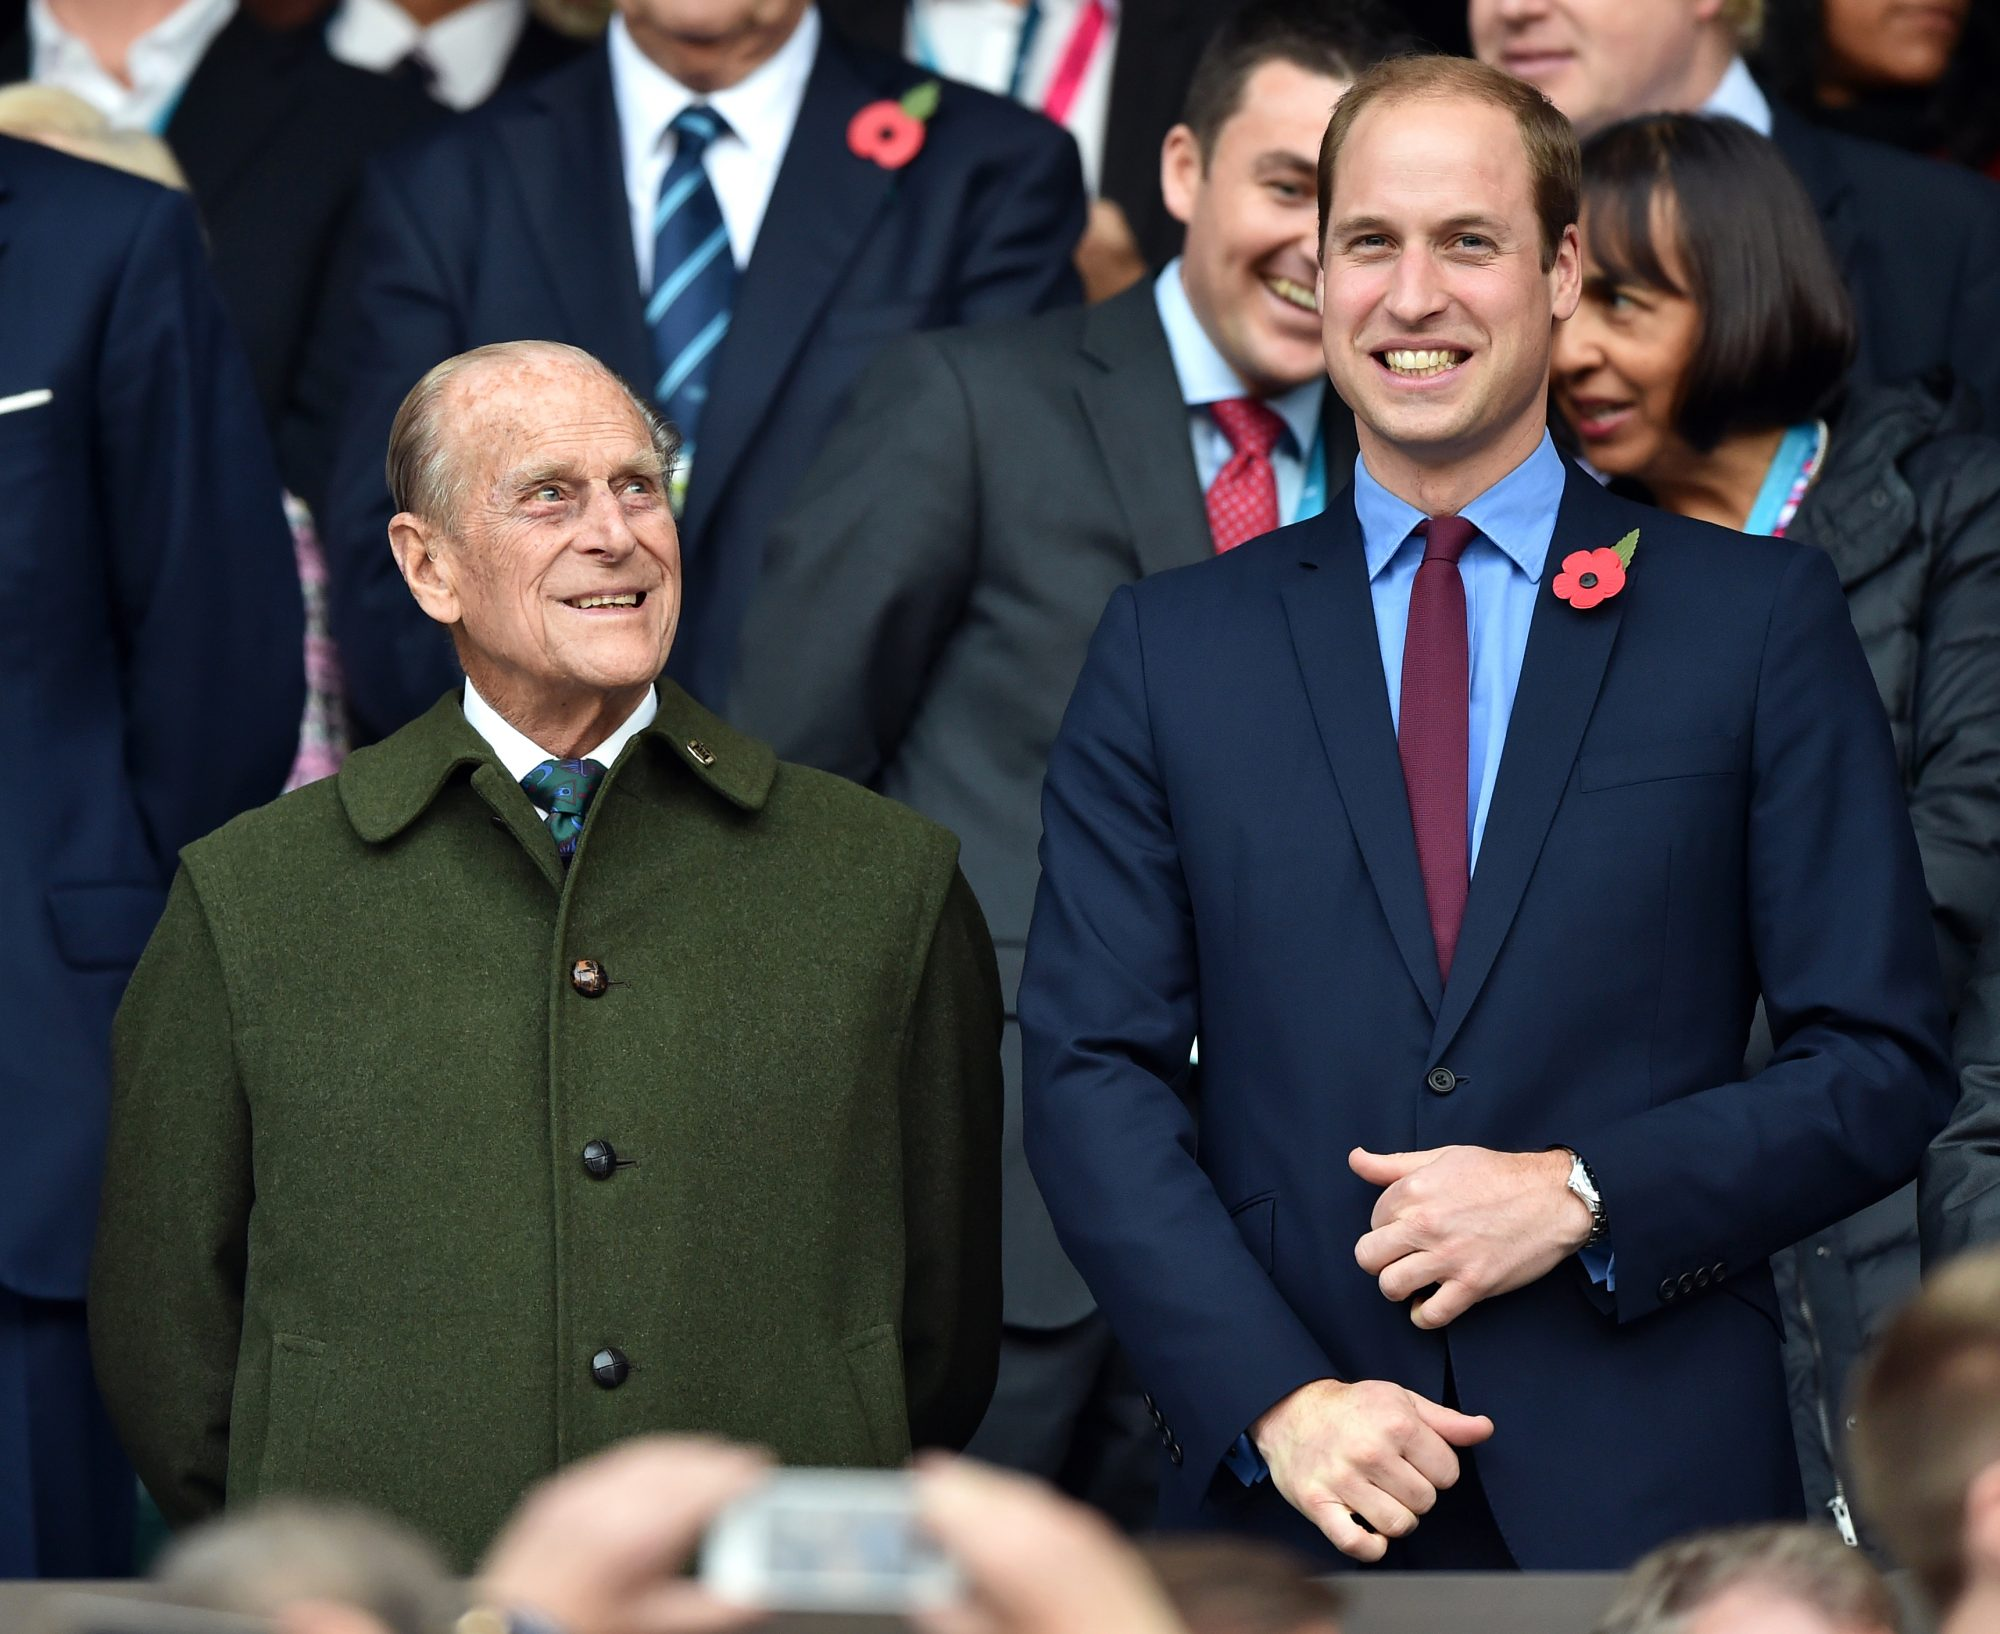 Prince Philip and Prince William